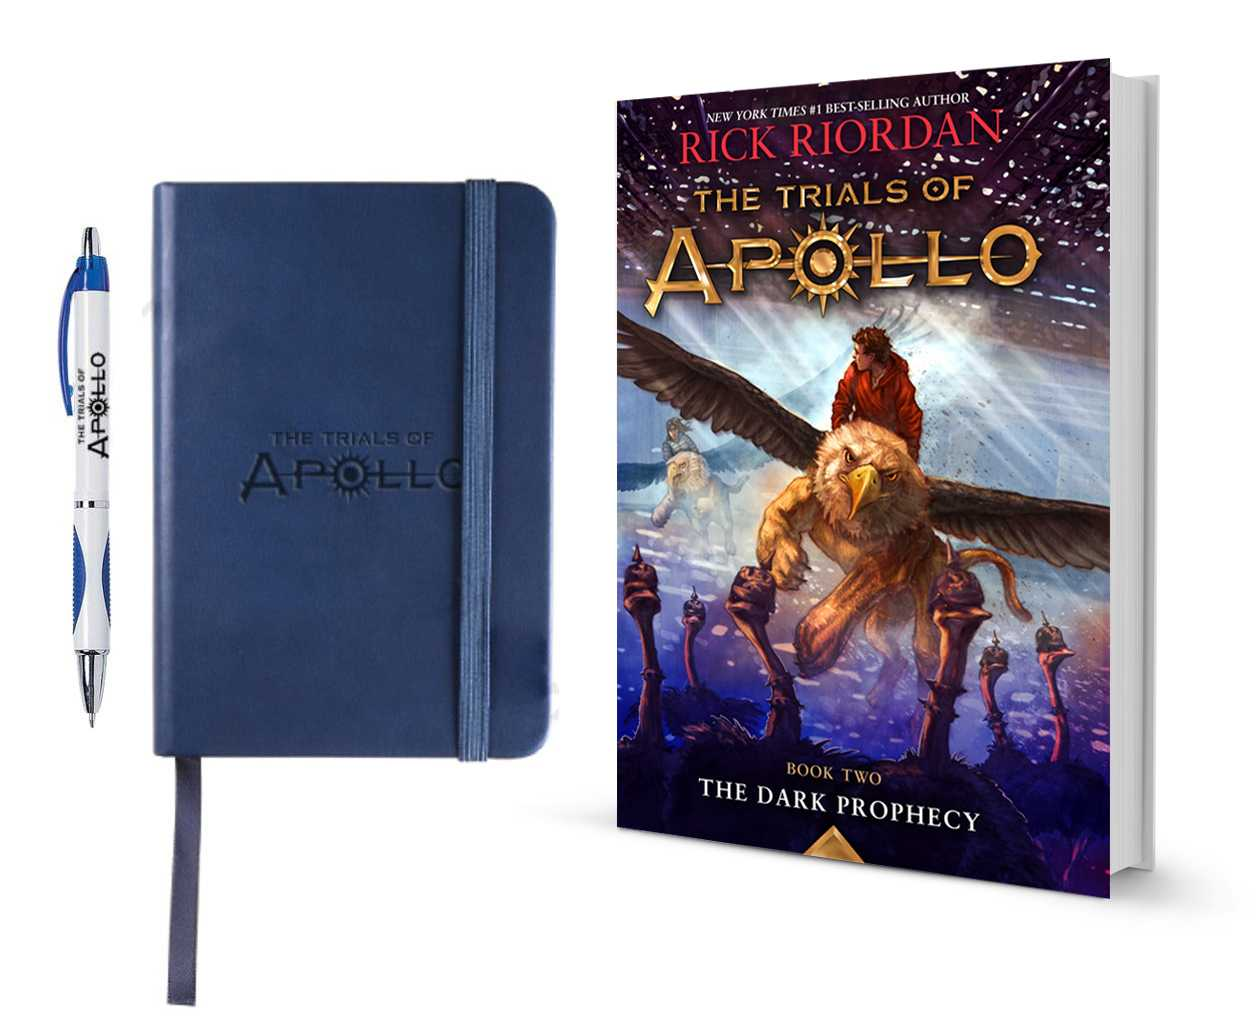 'The Trials of Apollo: The Dark Prophecy' Prize Pack From Disney-Hyperion  | The Trials Of Apollo